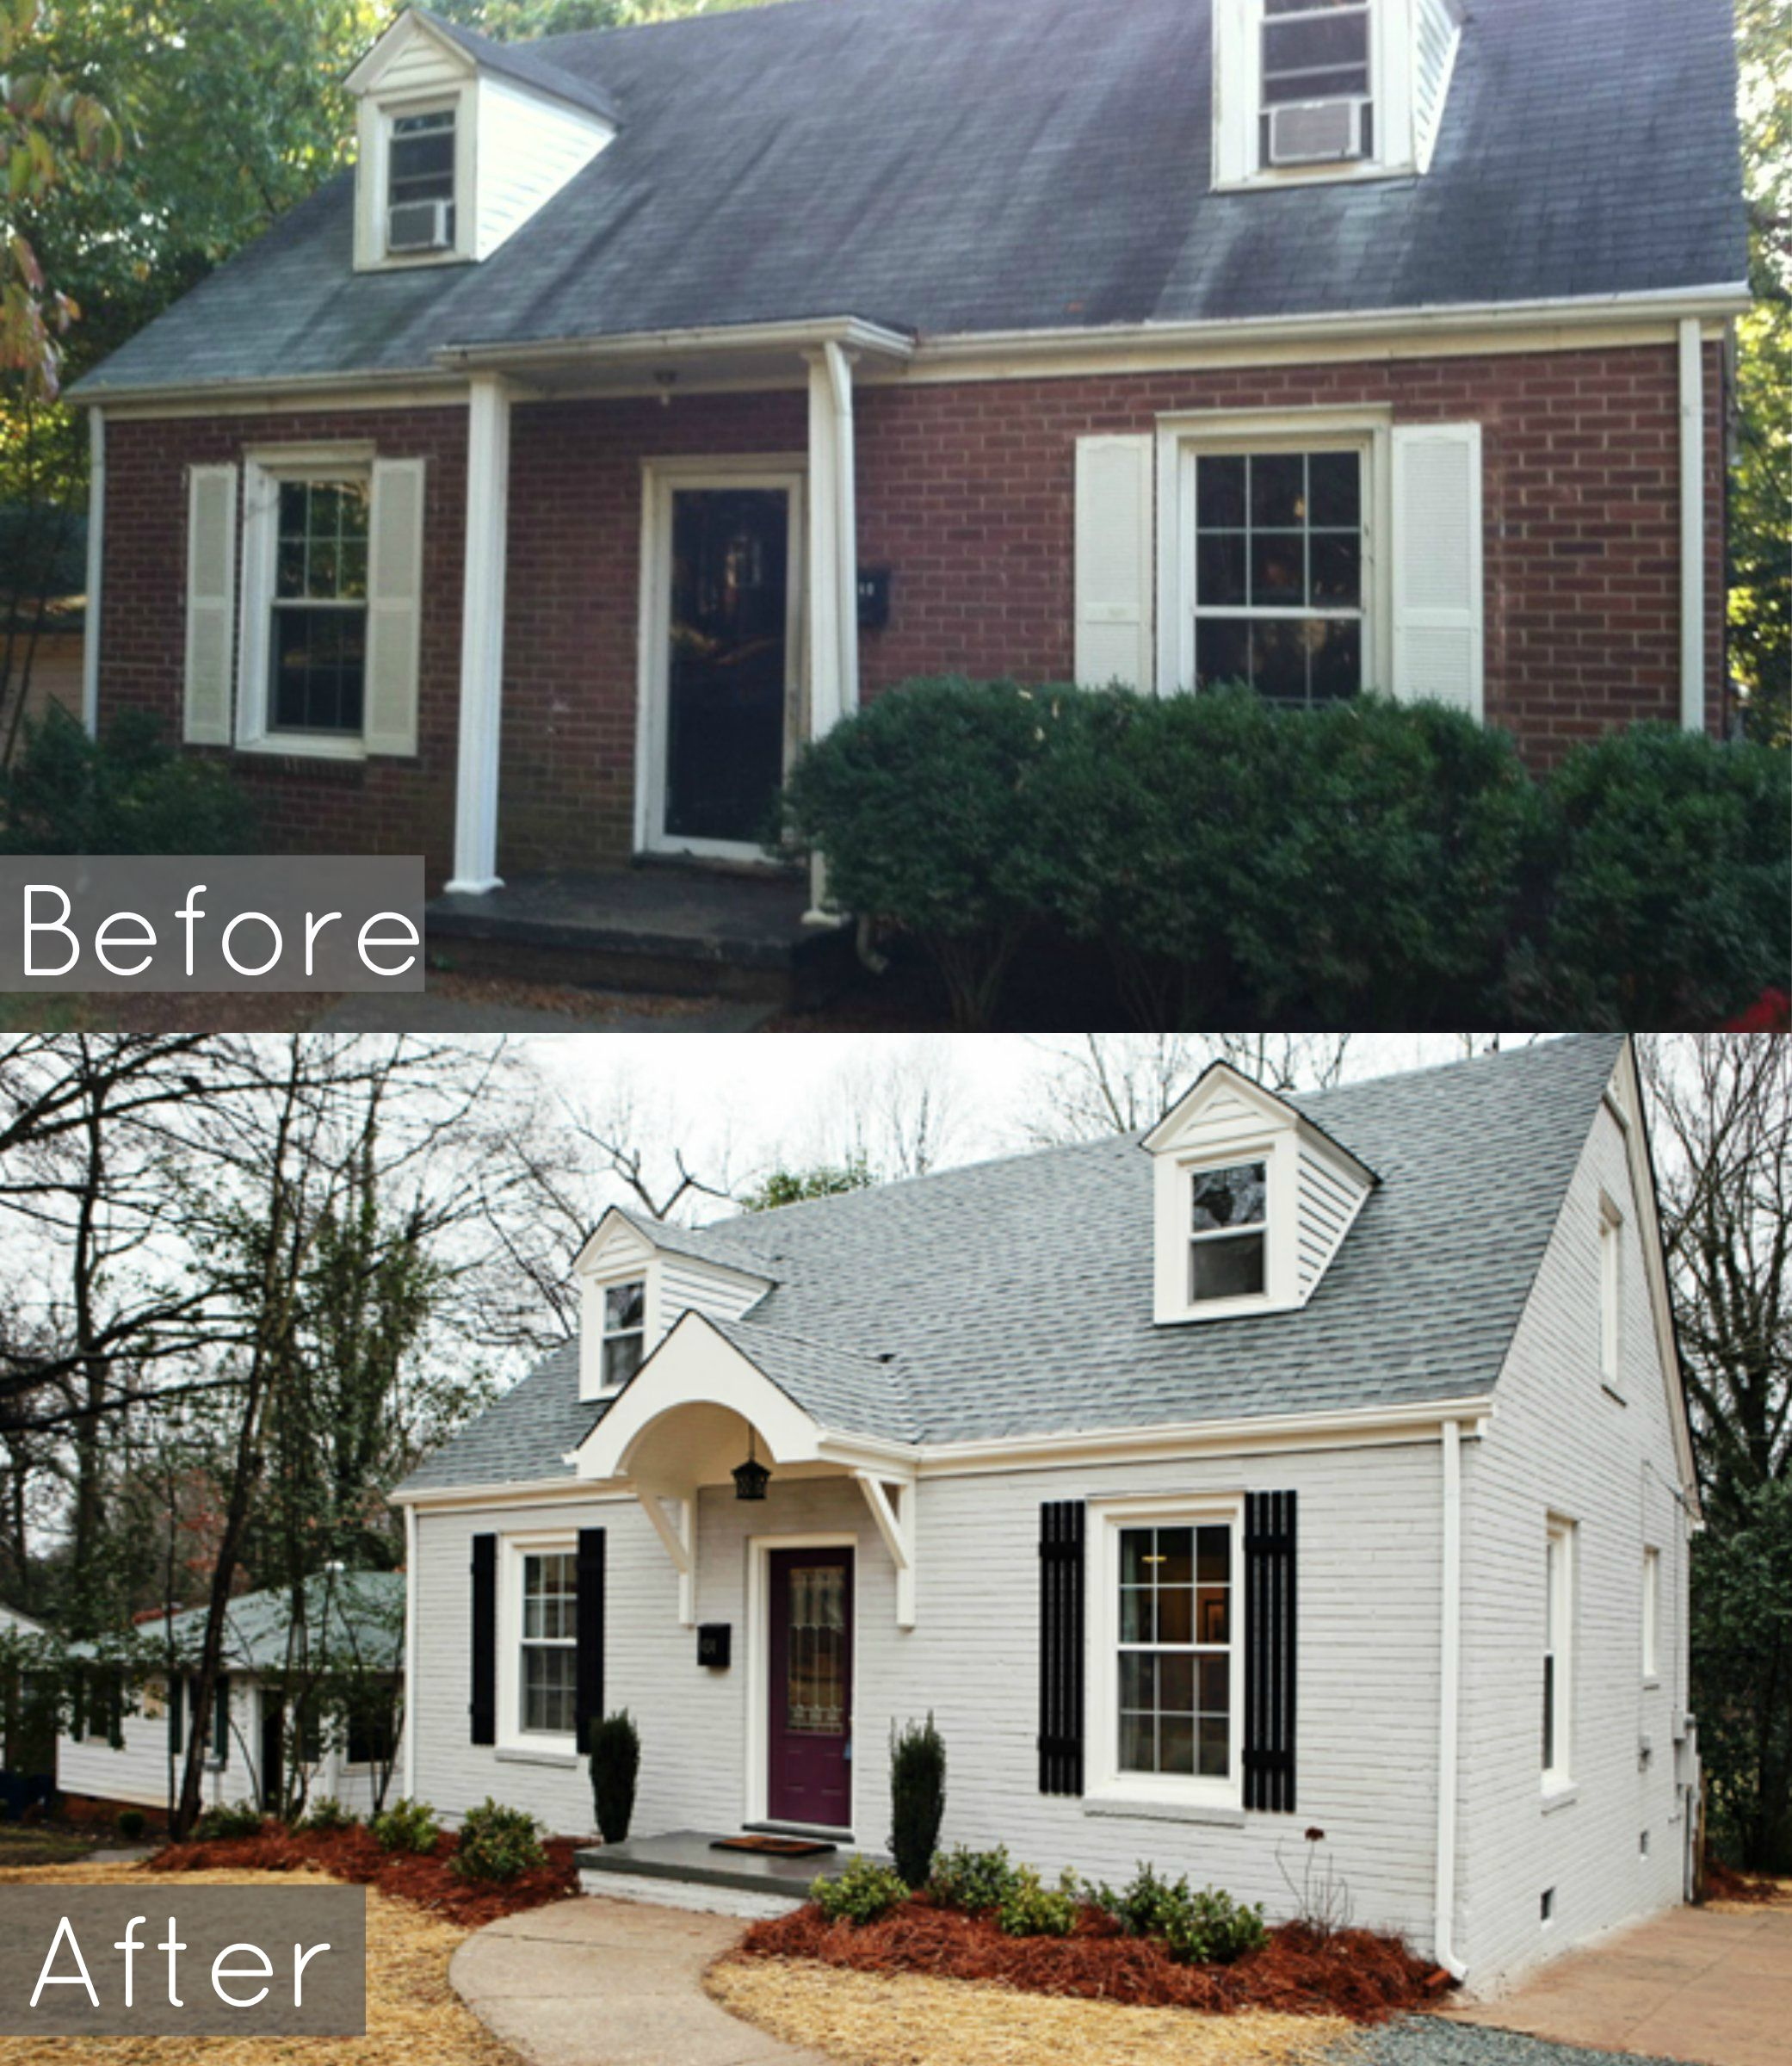 Here Is A Before And After Of This 1950's Cape Cop We Remodeled